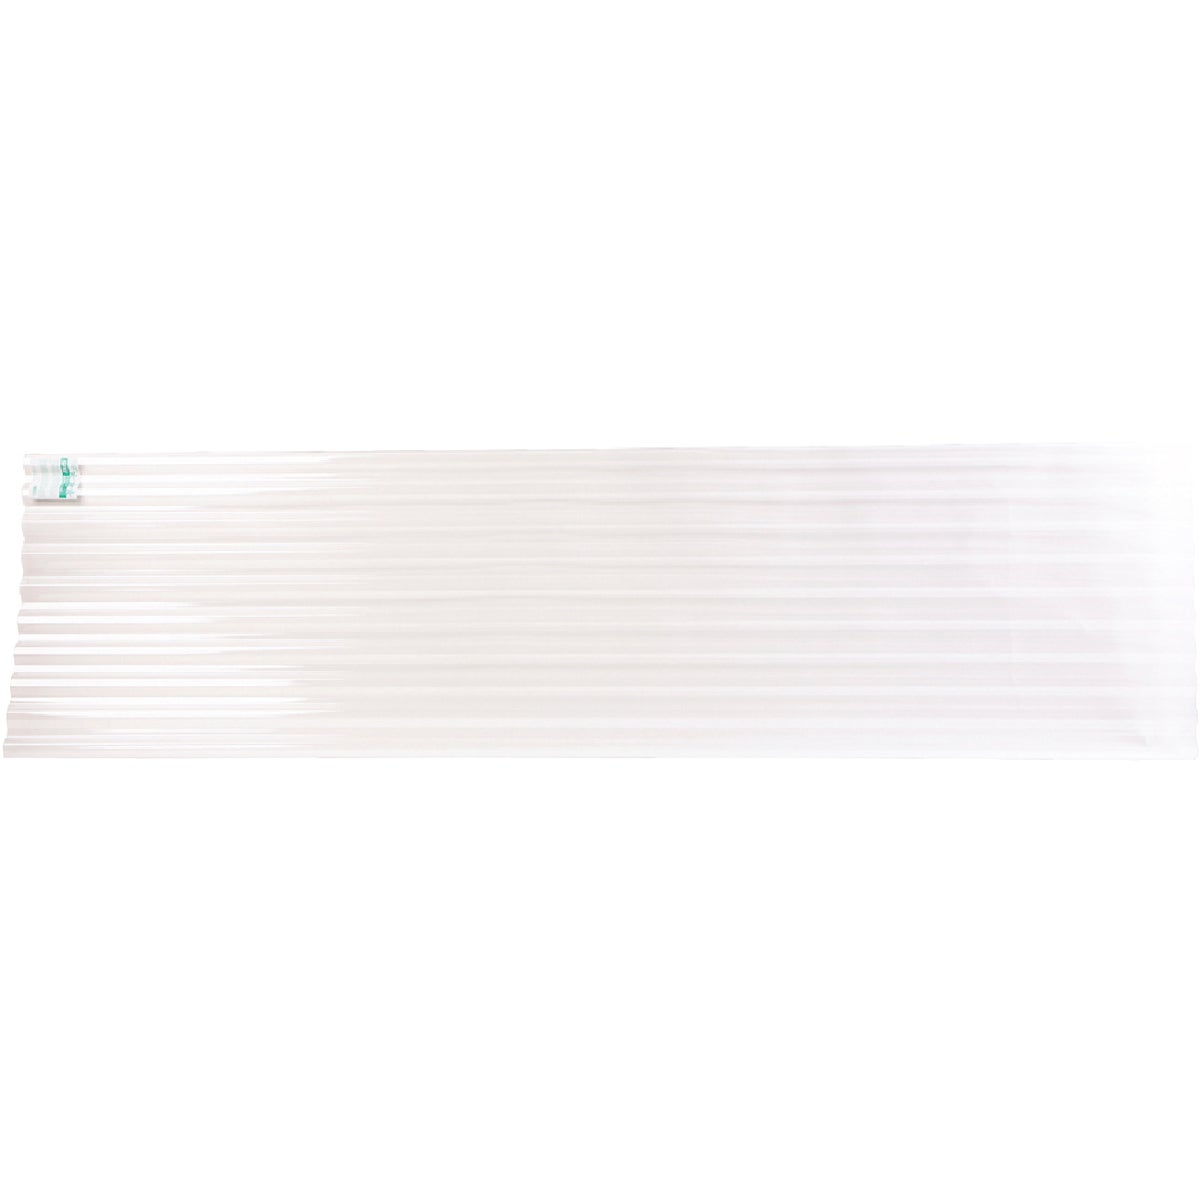 8' CLR CORRUGATED PANEL - 141813 by Ofic North America